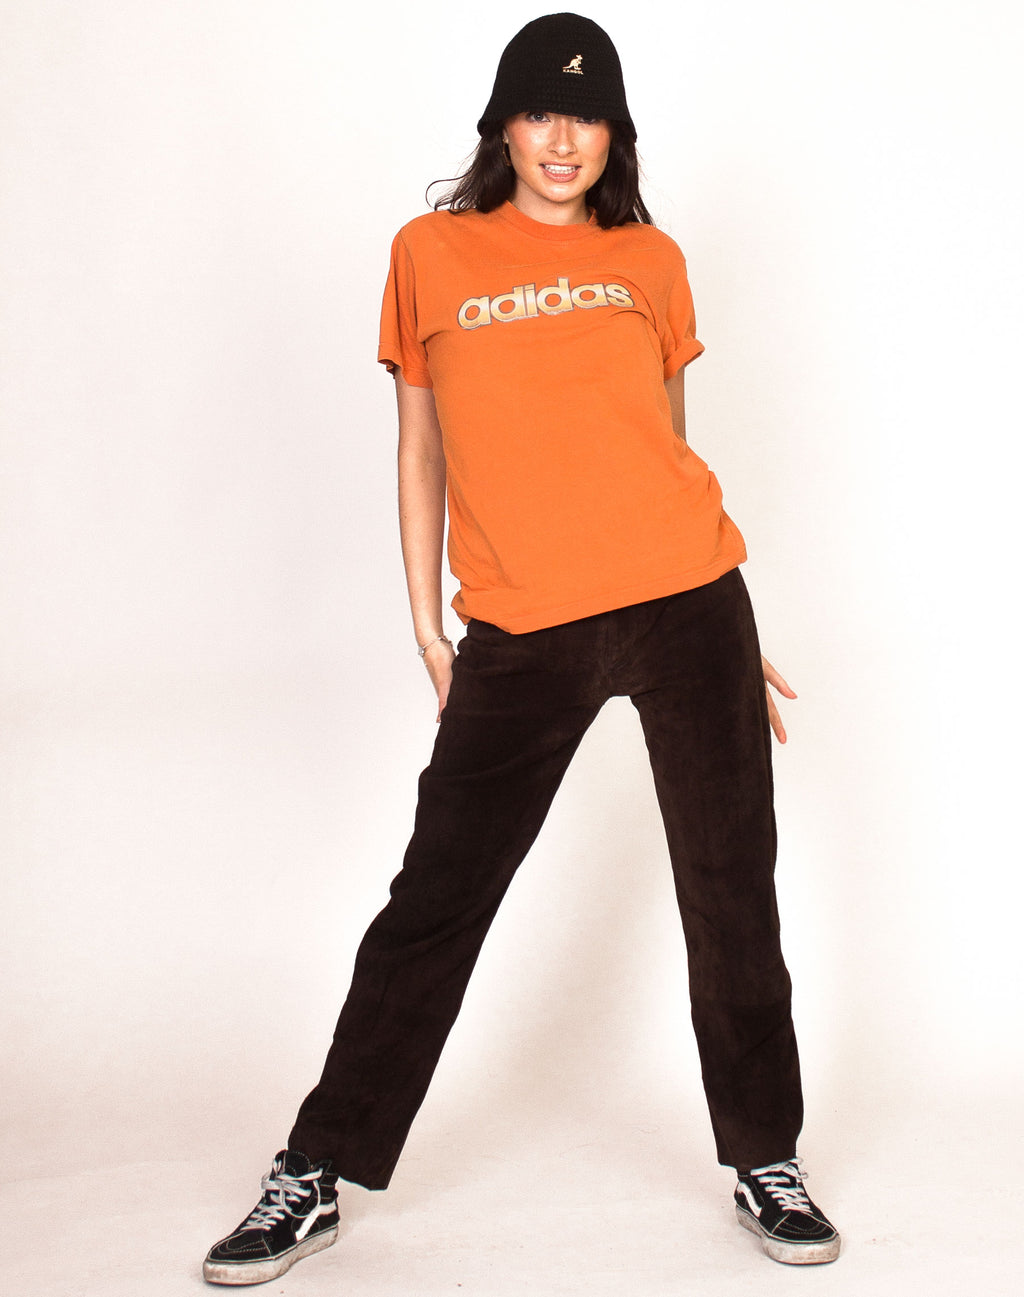 ADIDAS ORANGE SLOGAN T-SHIRT